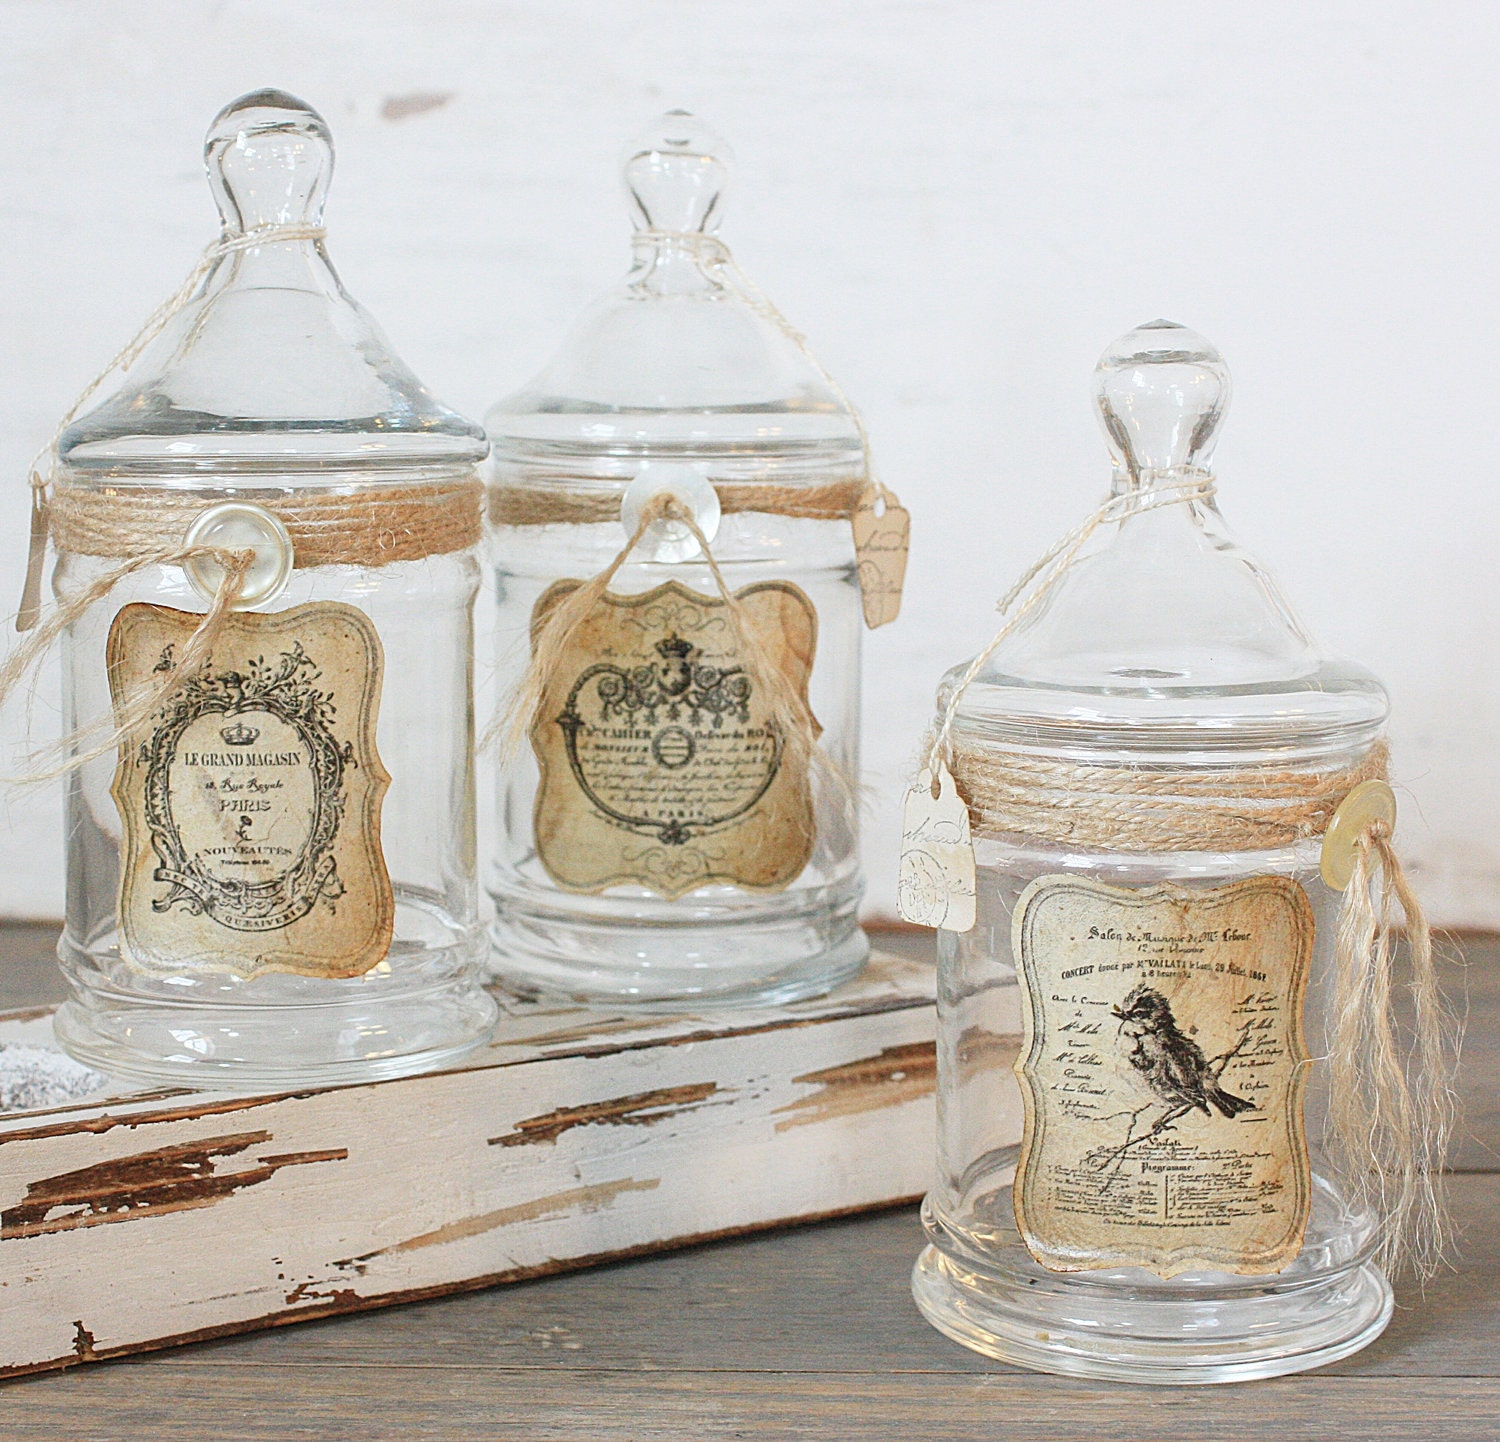 Repurposed Vintage Apothecary Jar Rustic French Bird